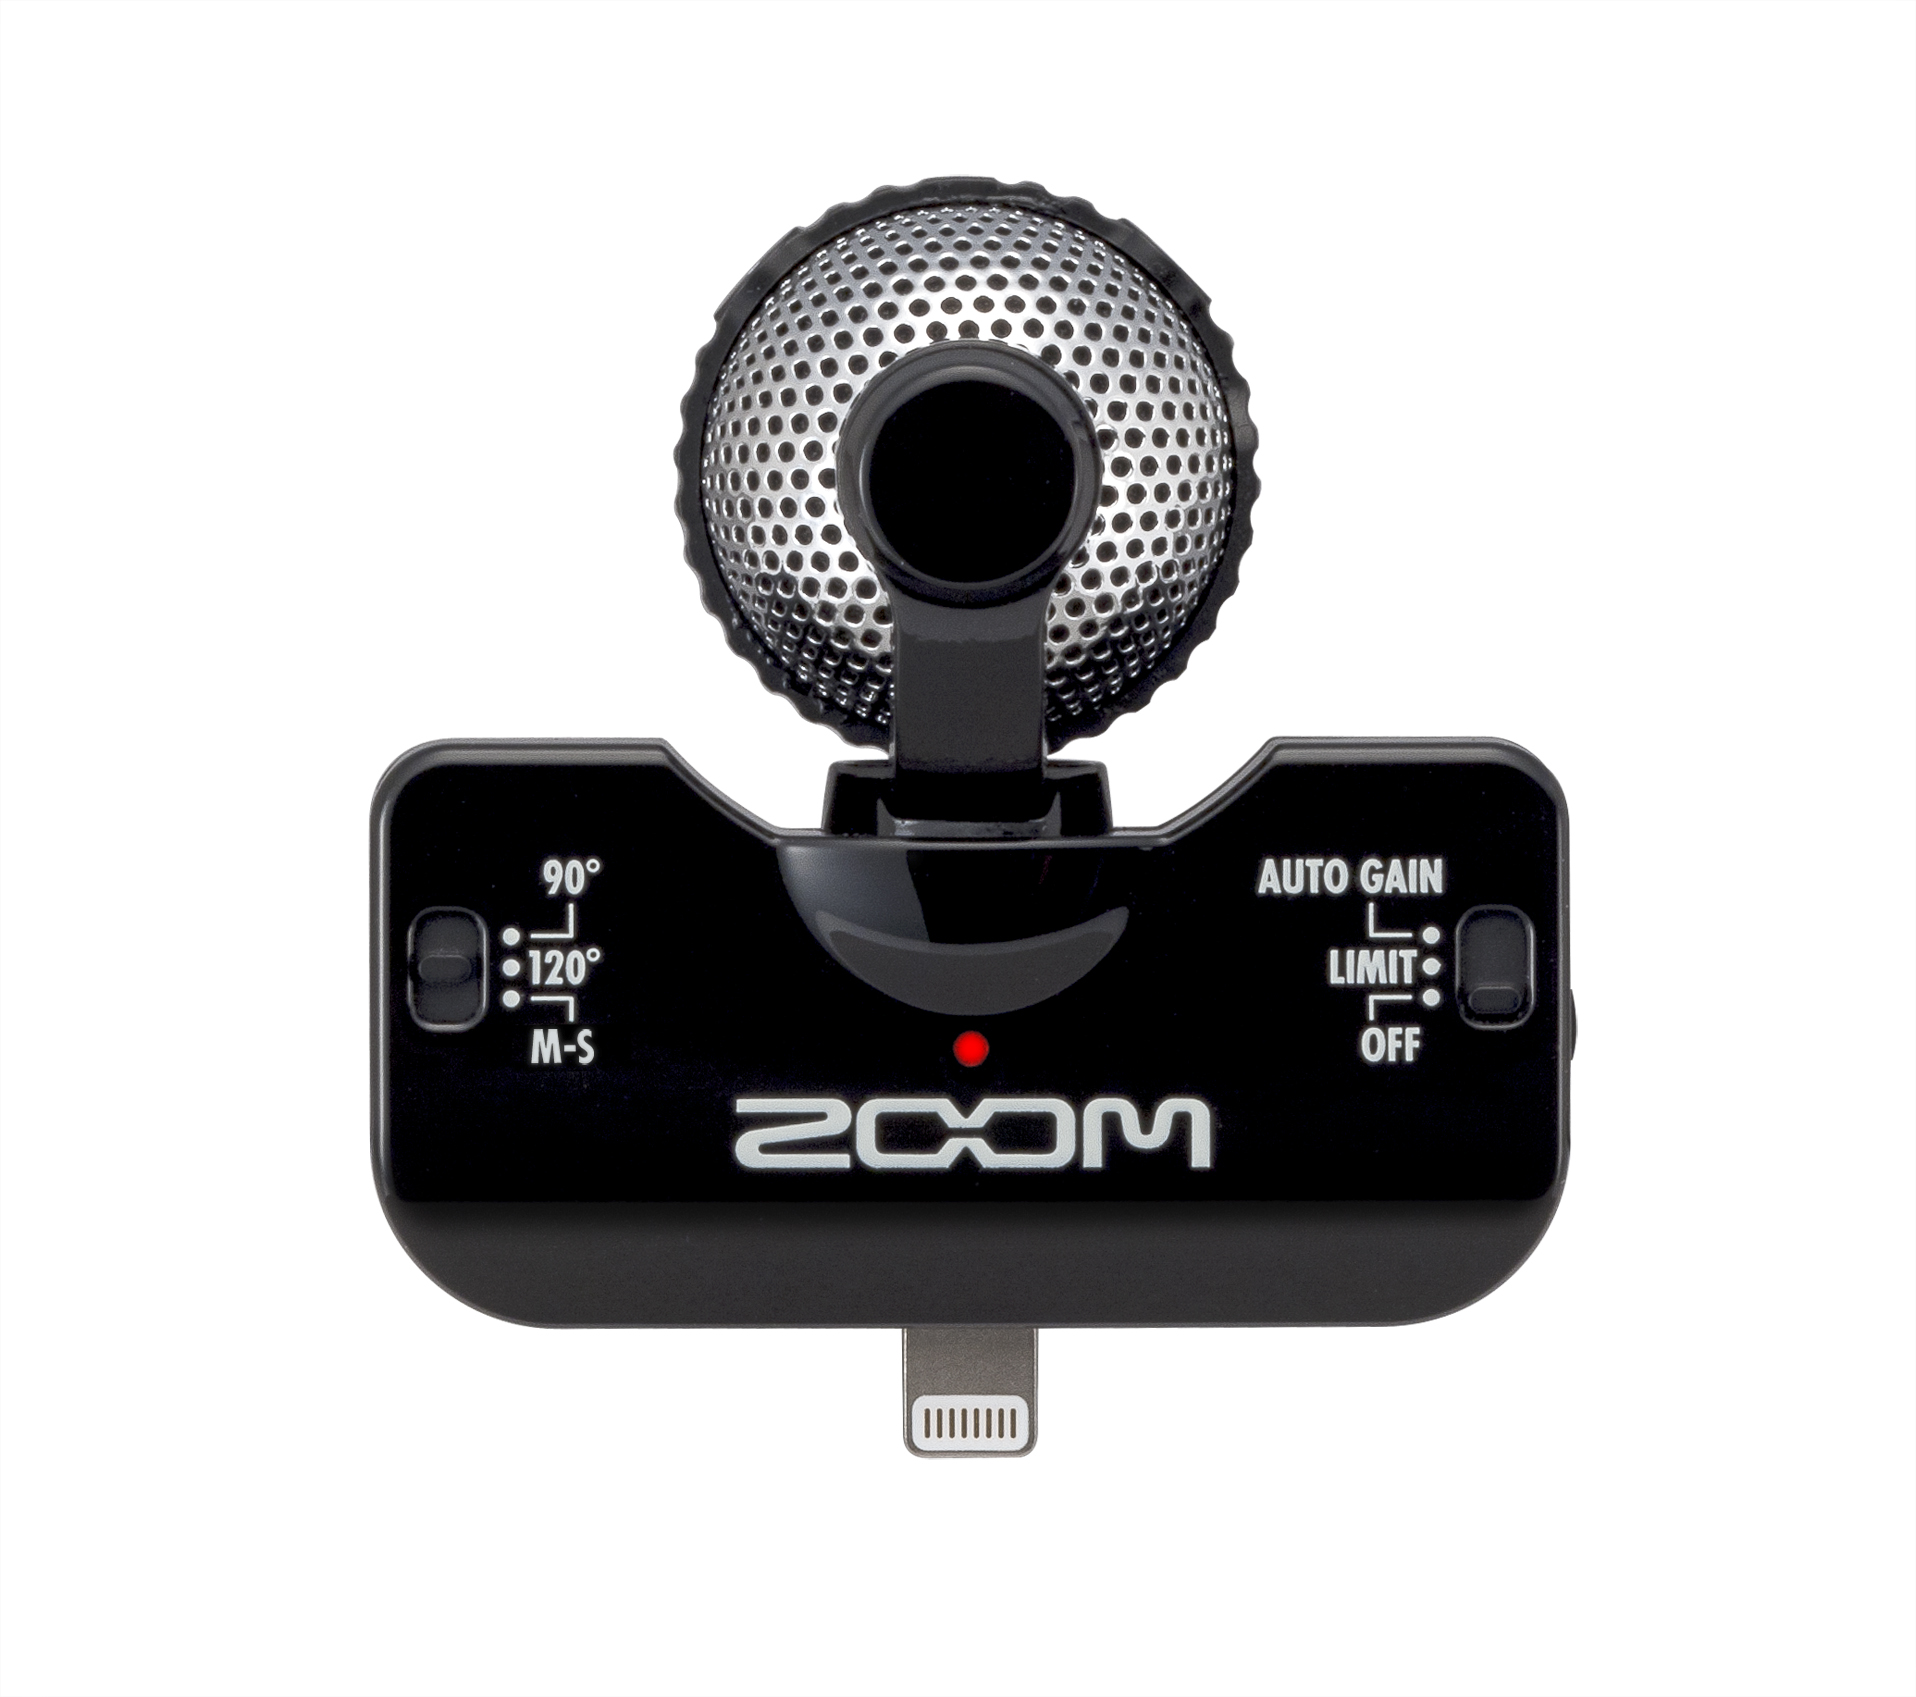 Iq5 Ms Stereo Microphone For Ios Zoom